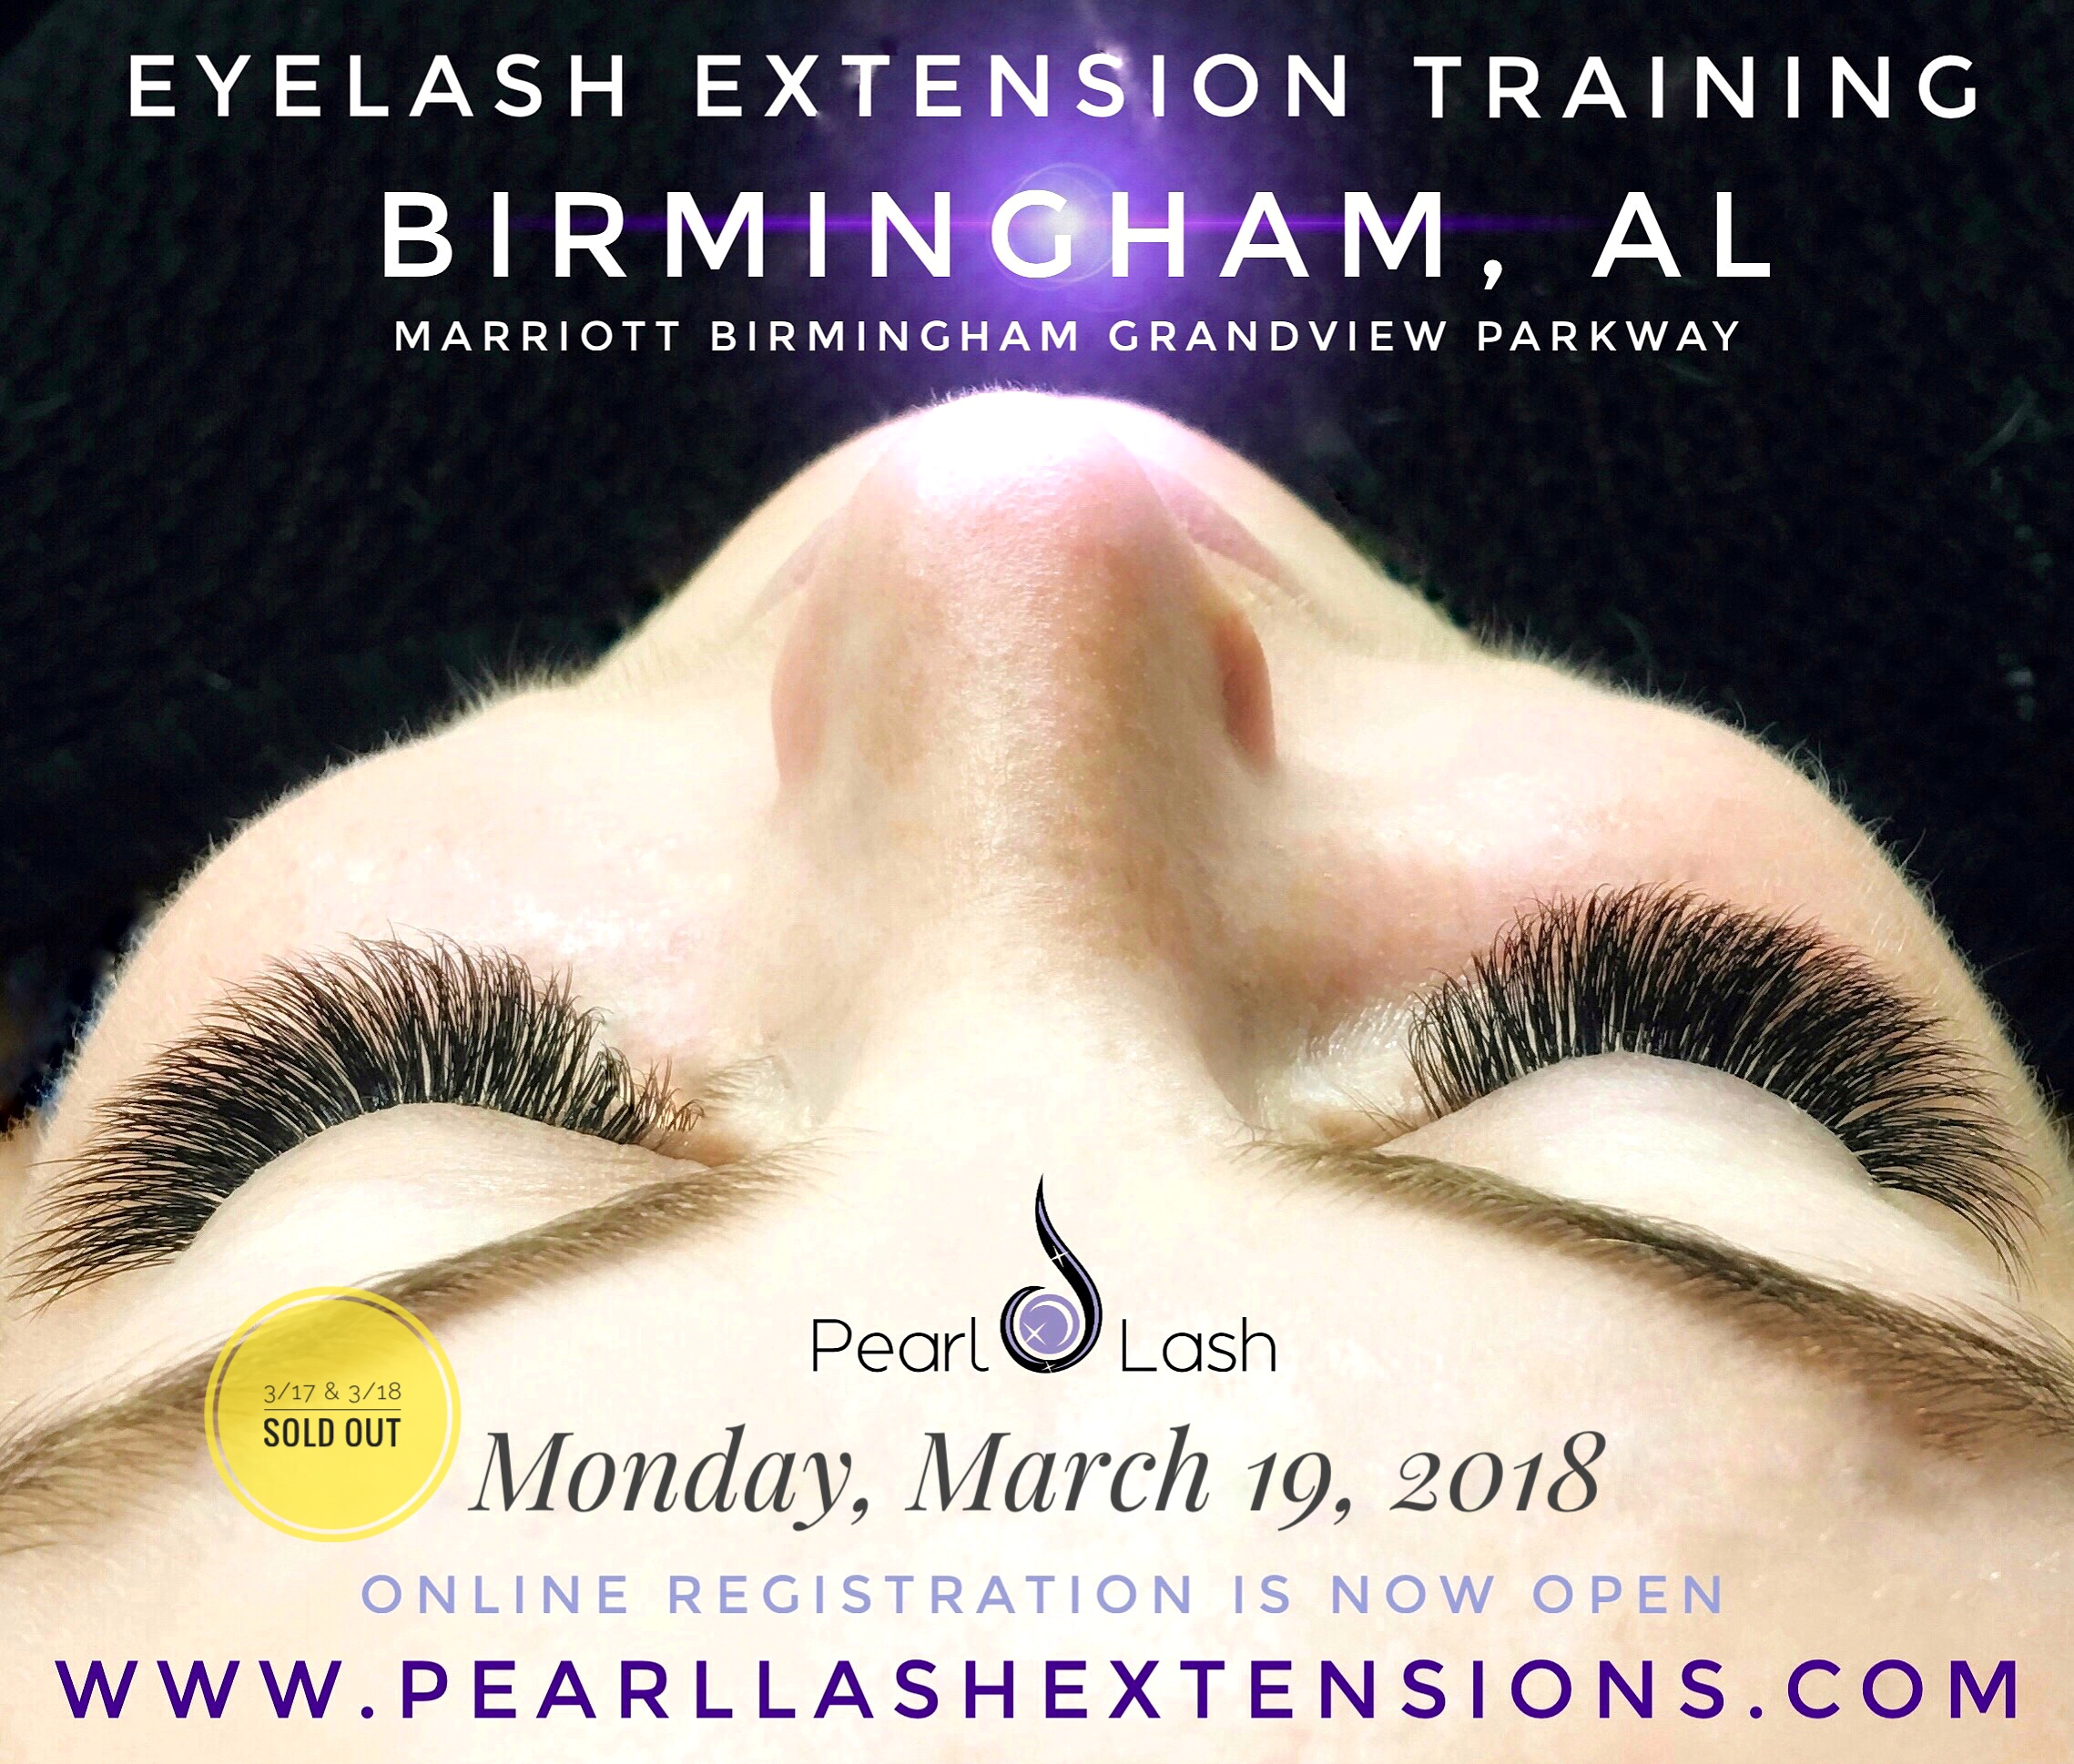 Eyelash Extension Training Event Presented By Pearl Lash Corporation